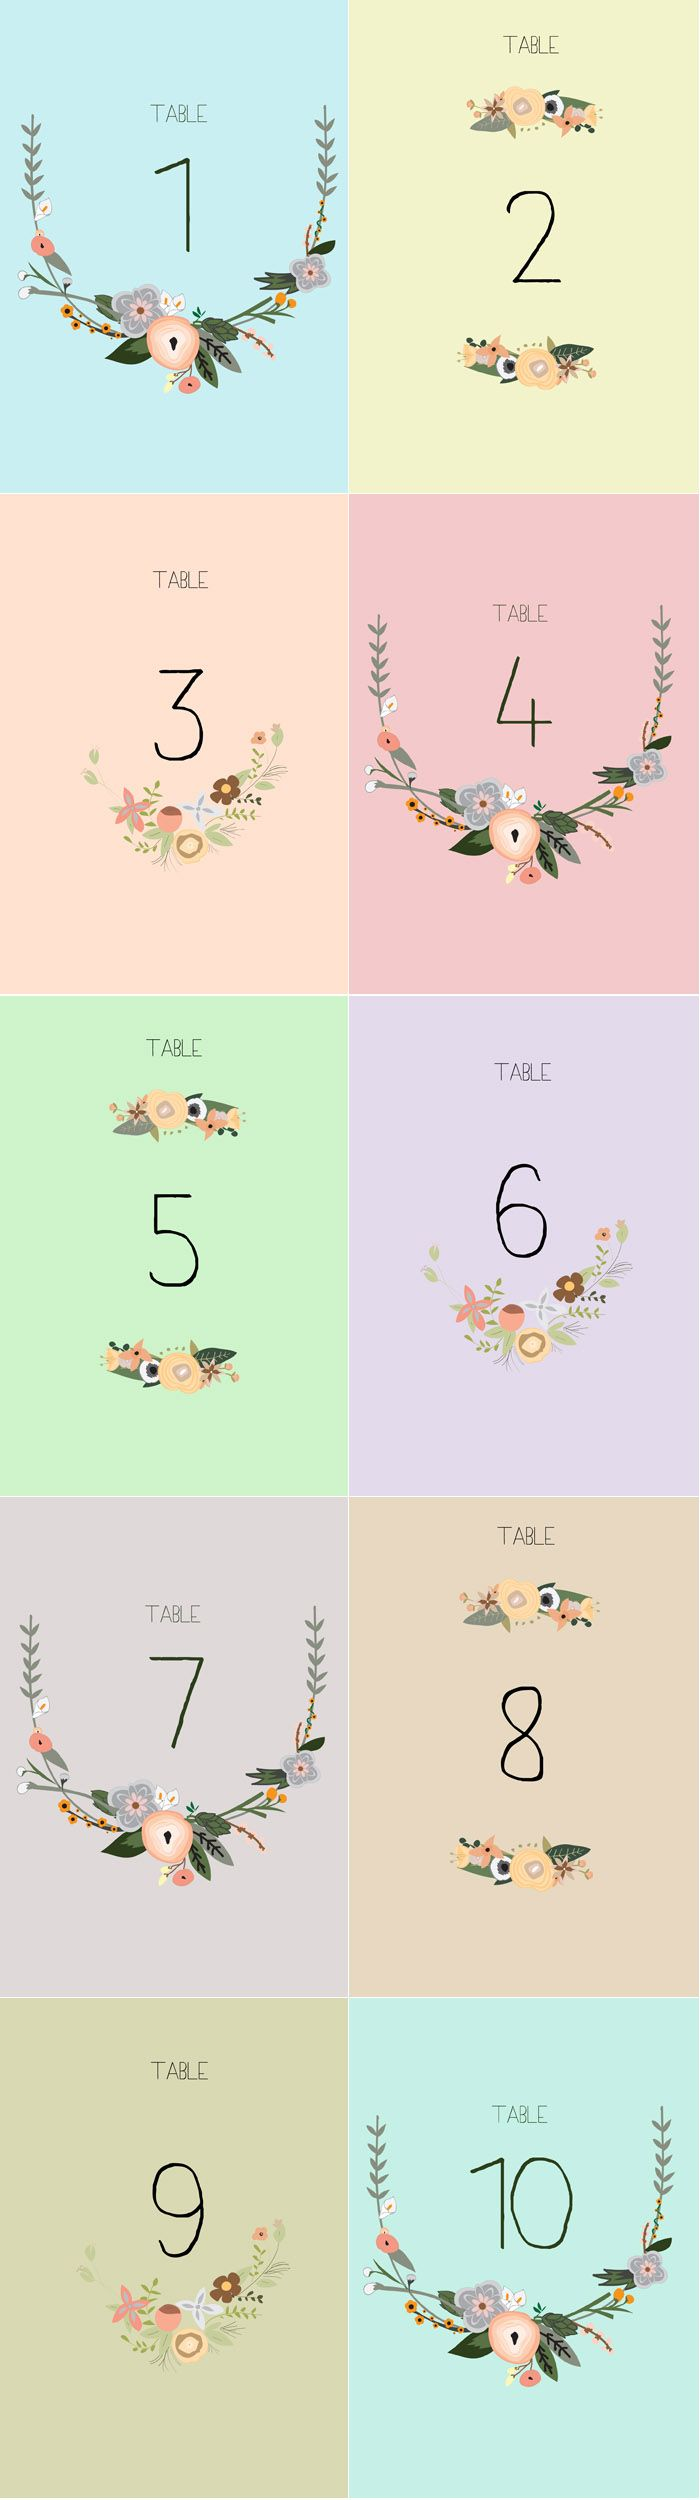 Number 25 pictures printable number 25 - Number 25 Pictures Printable Number 25 54